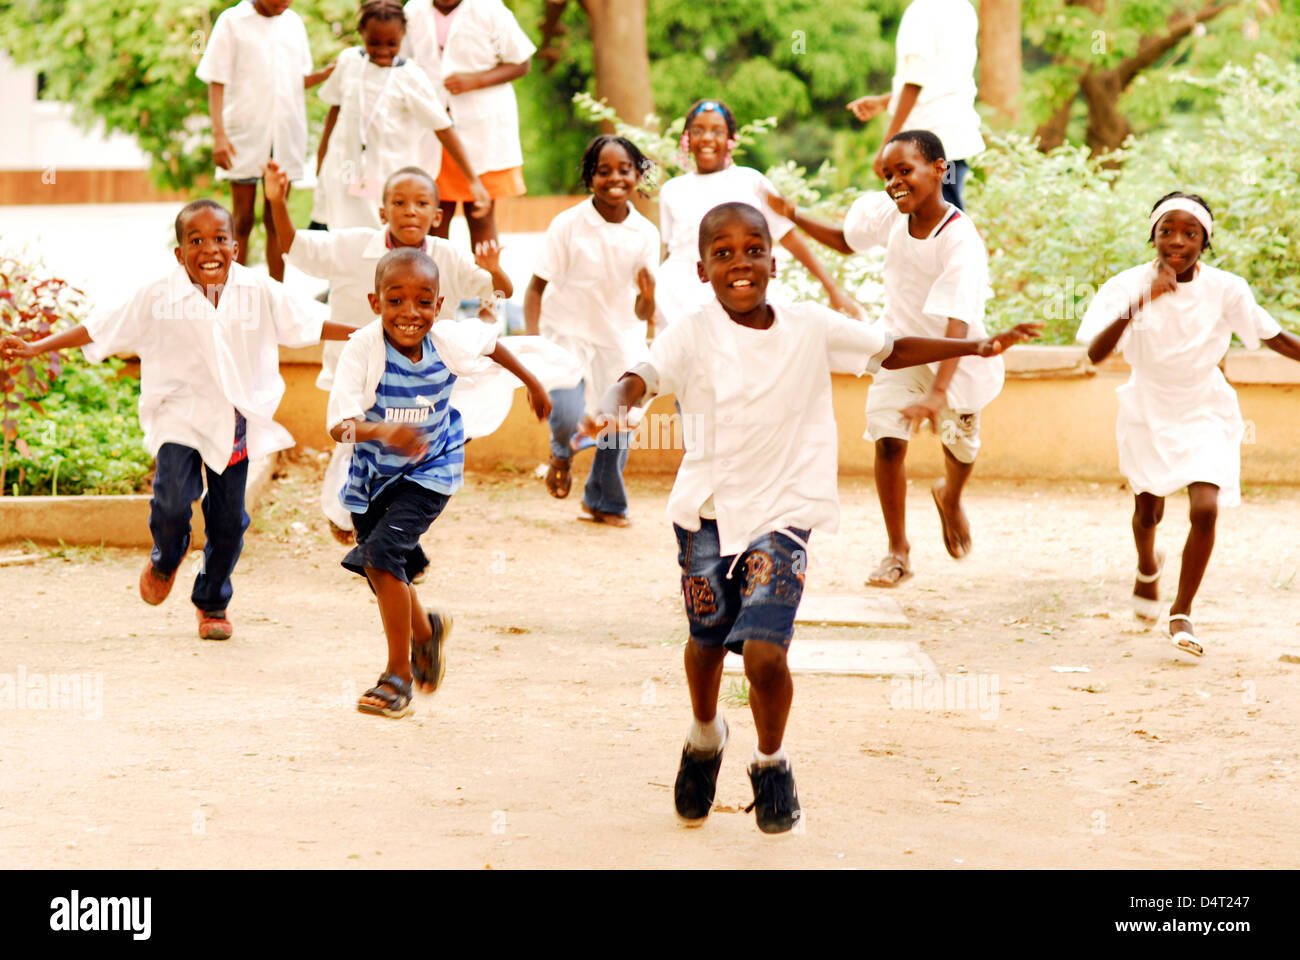 Angola, Luanda, group of African school children running together at a playground with trees in the background. - Stock Image